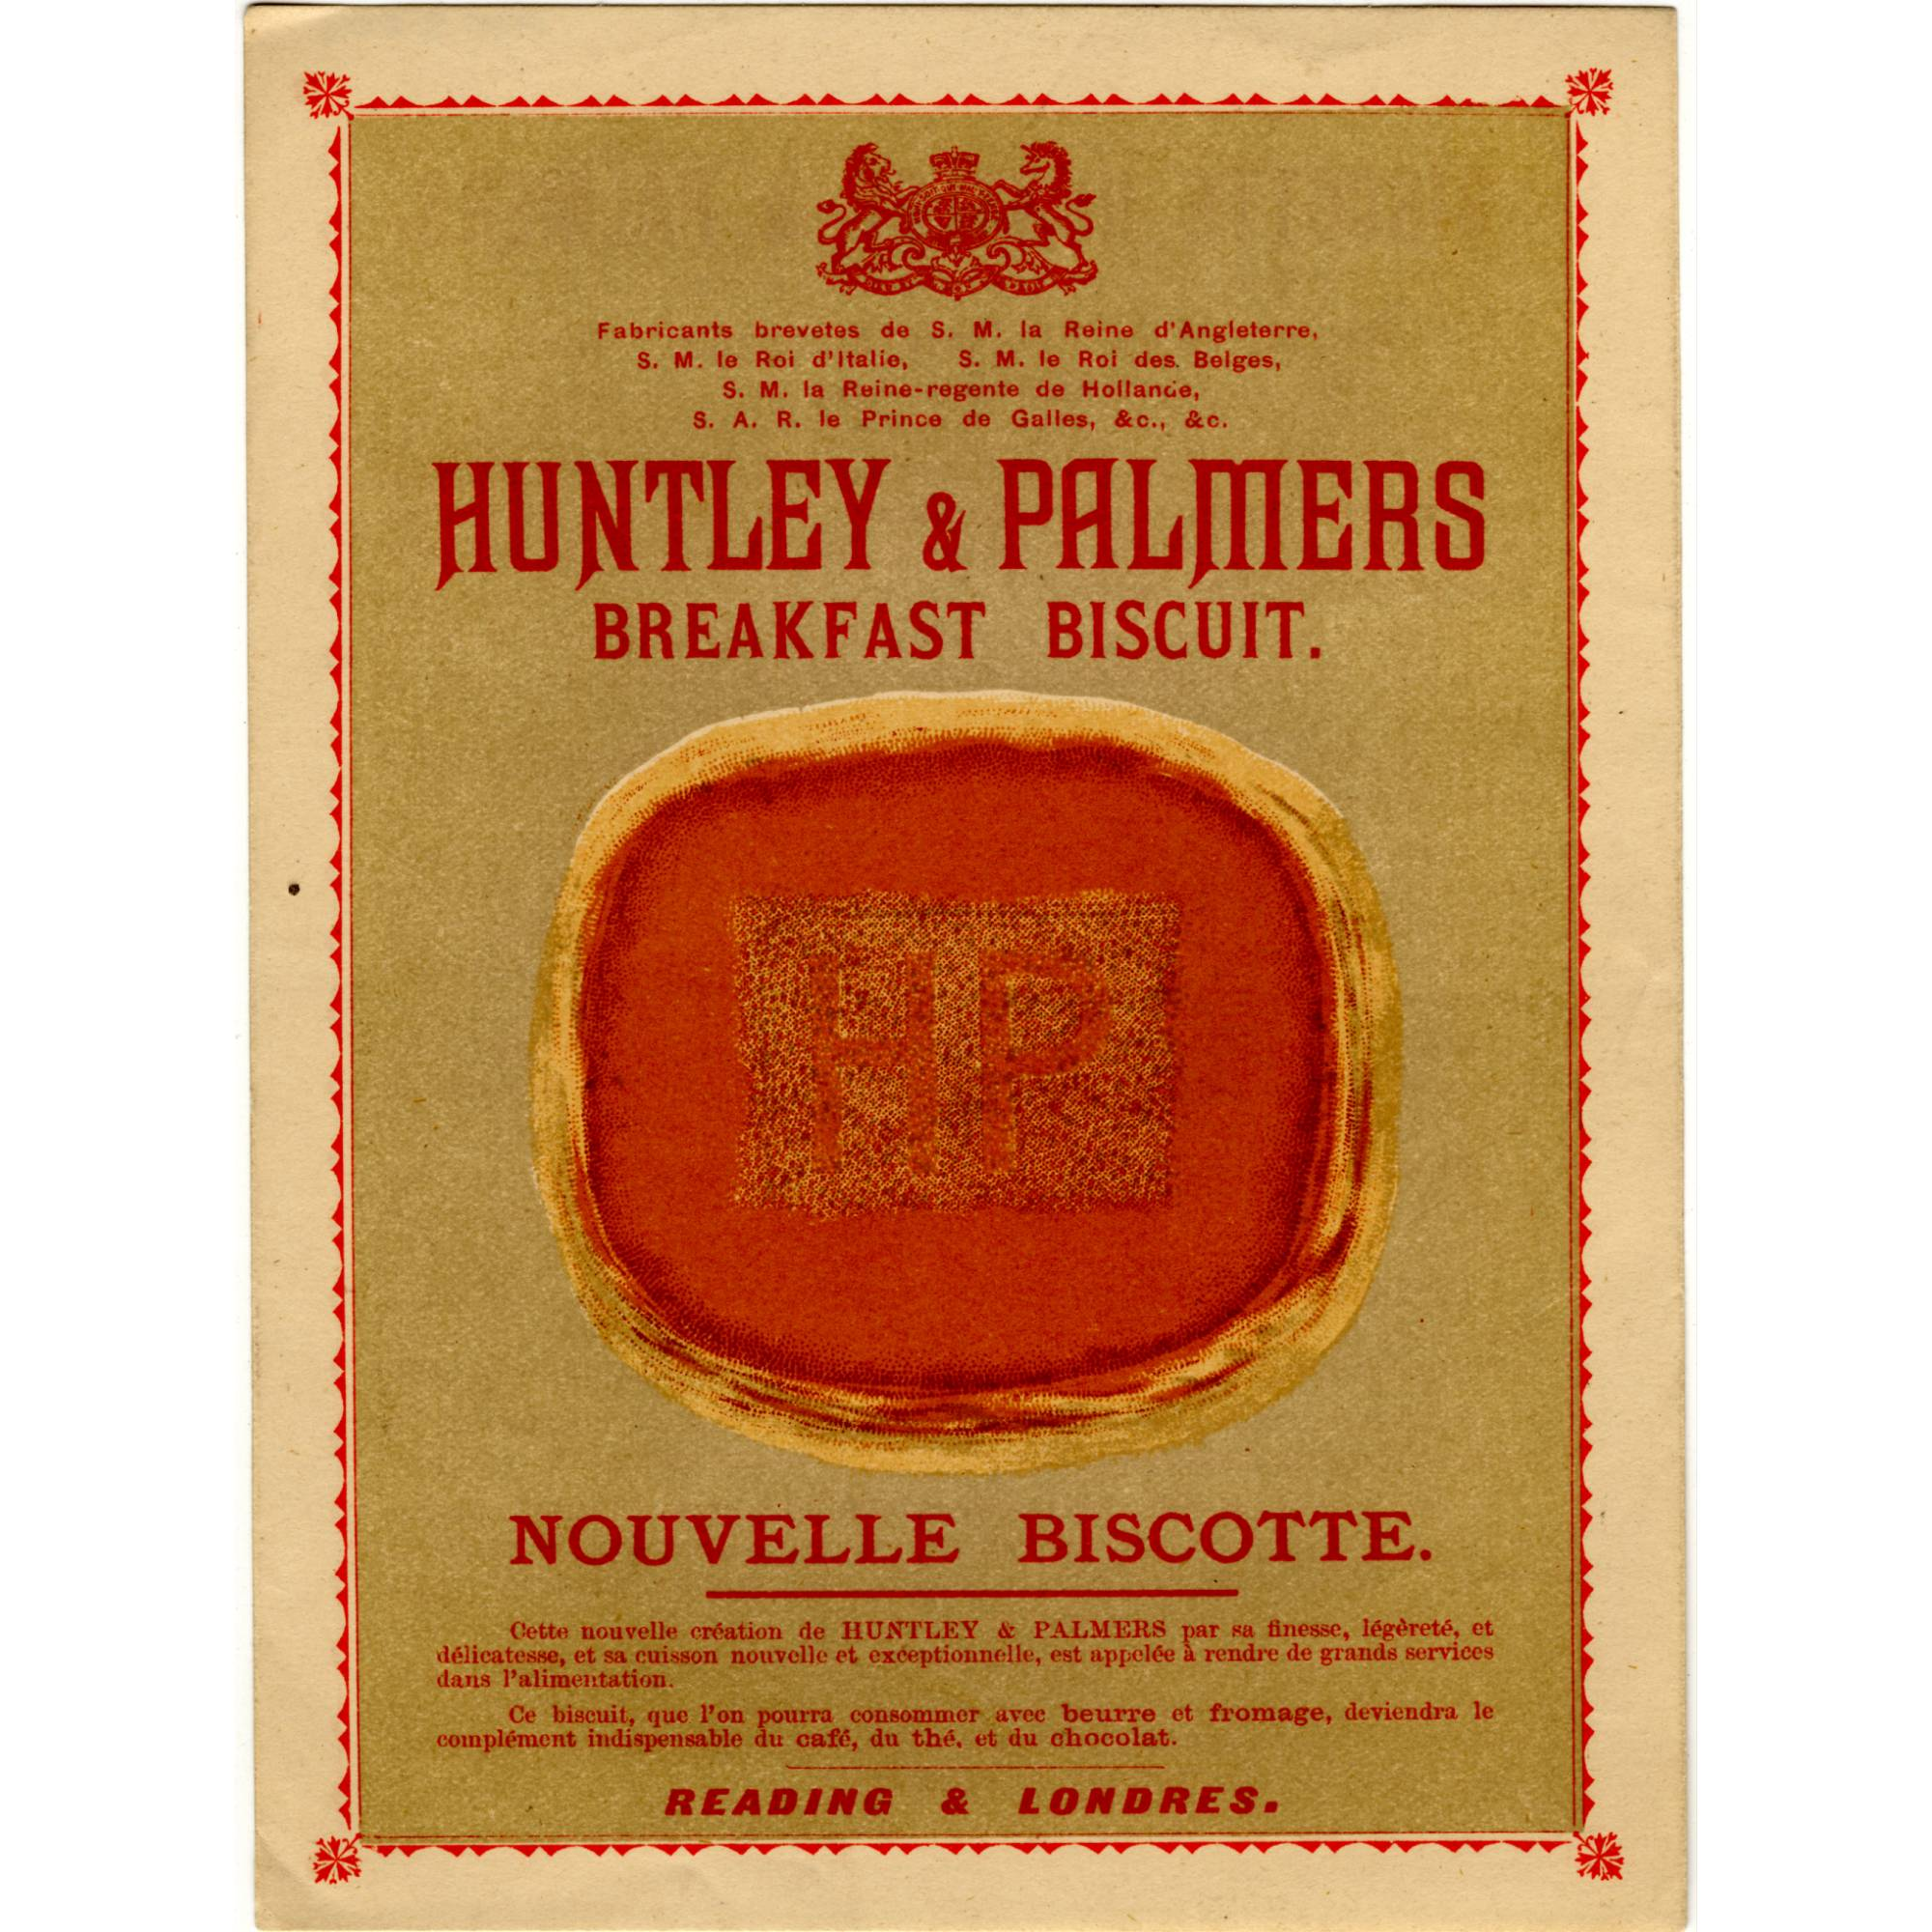 Breakfast Biscuits, 1894